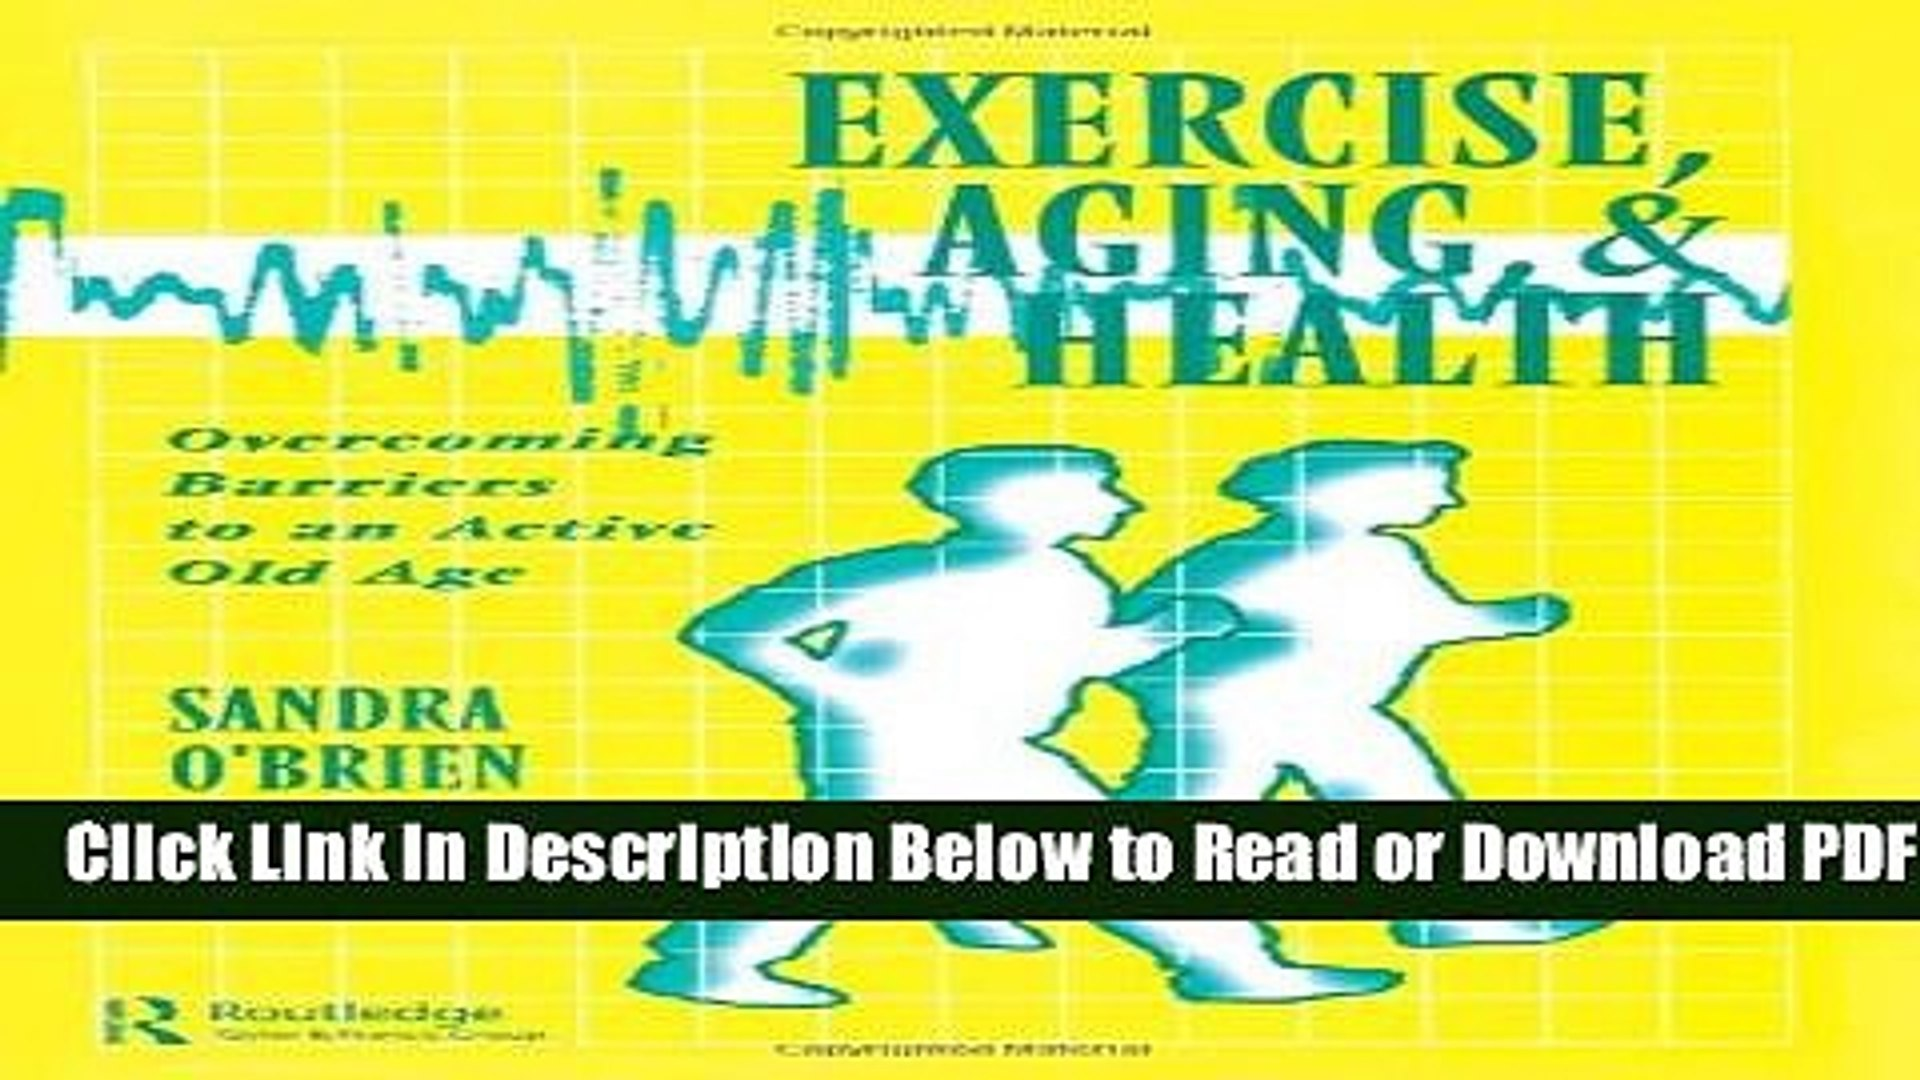 [Get] Exercise, Aging and Health: Overcoming Barriers to an Active Old Age Free Online